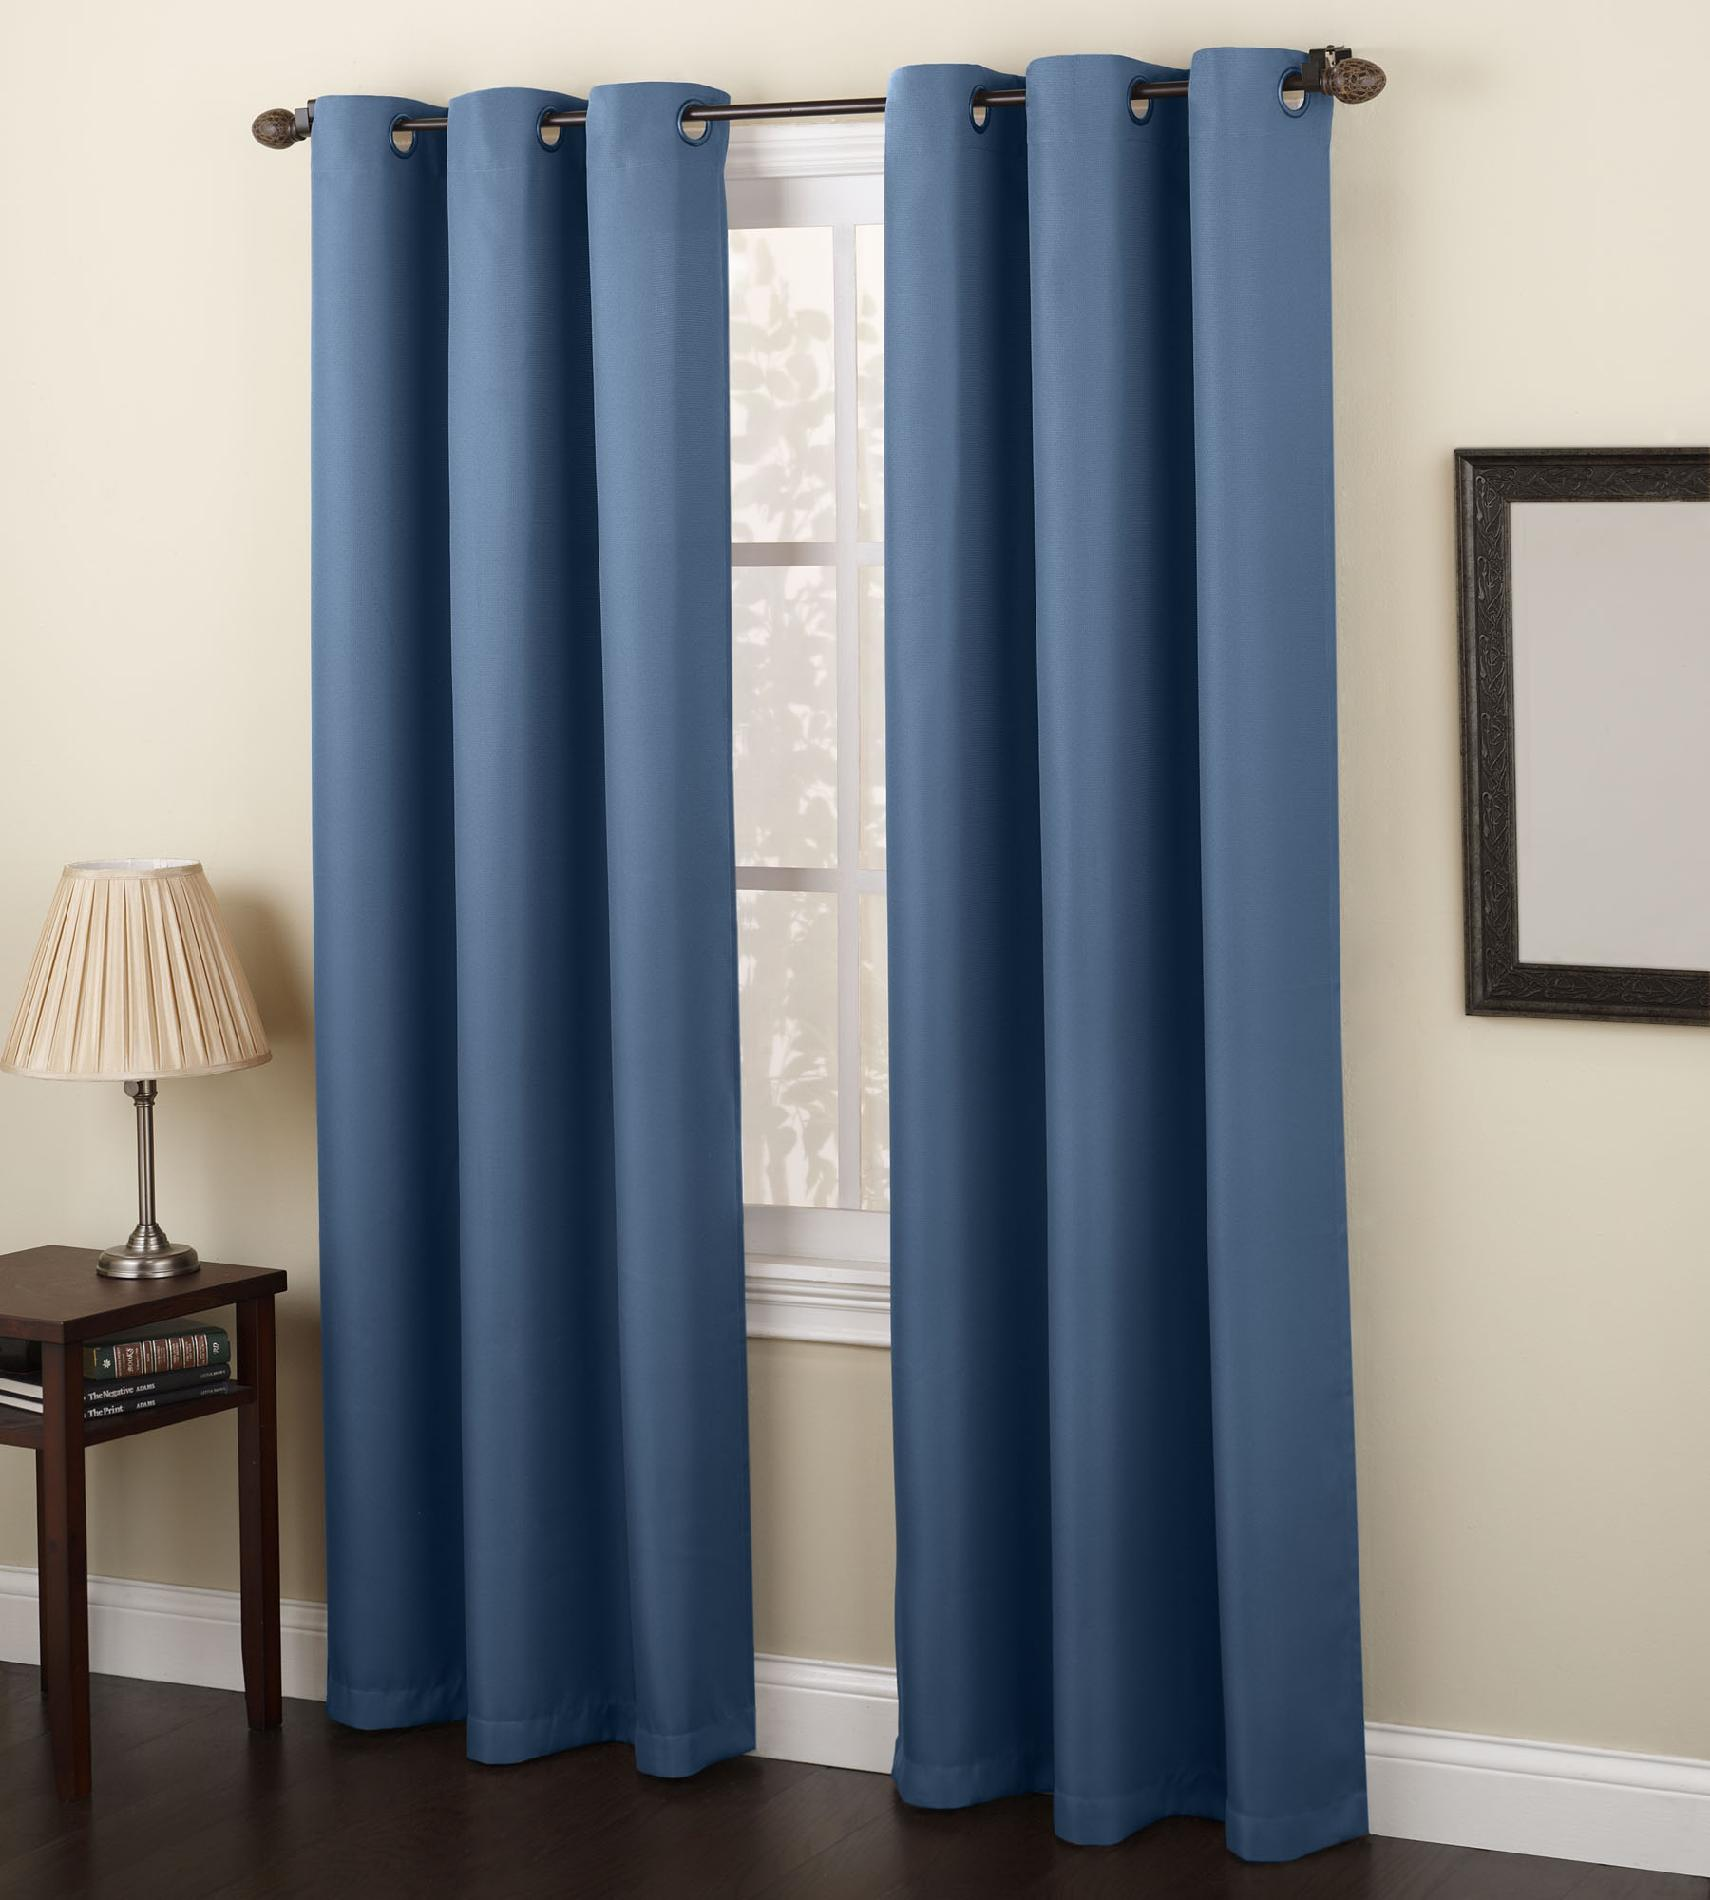 Two Story Window Drapes | Cheap Window Curtains and Drapes | Window Drapes